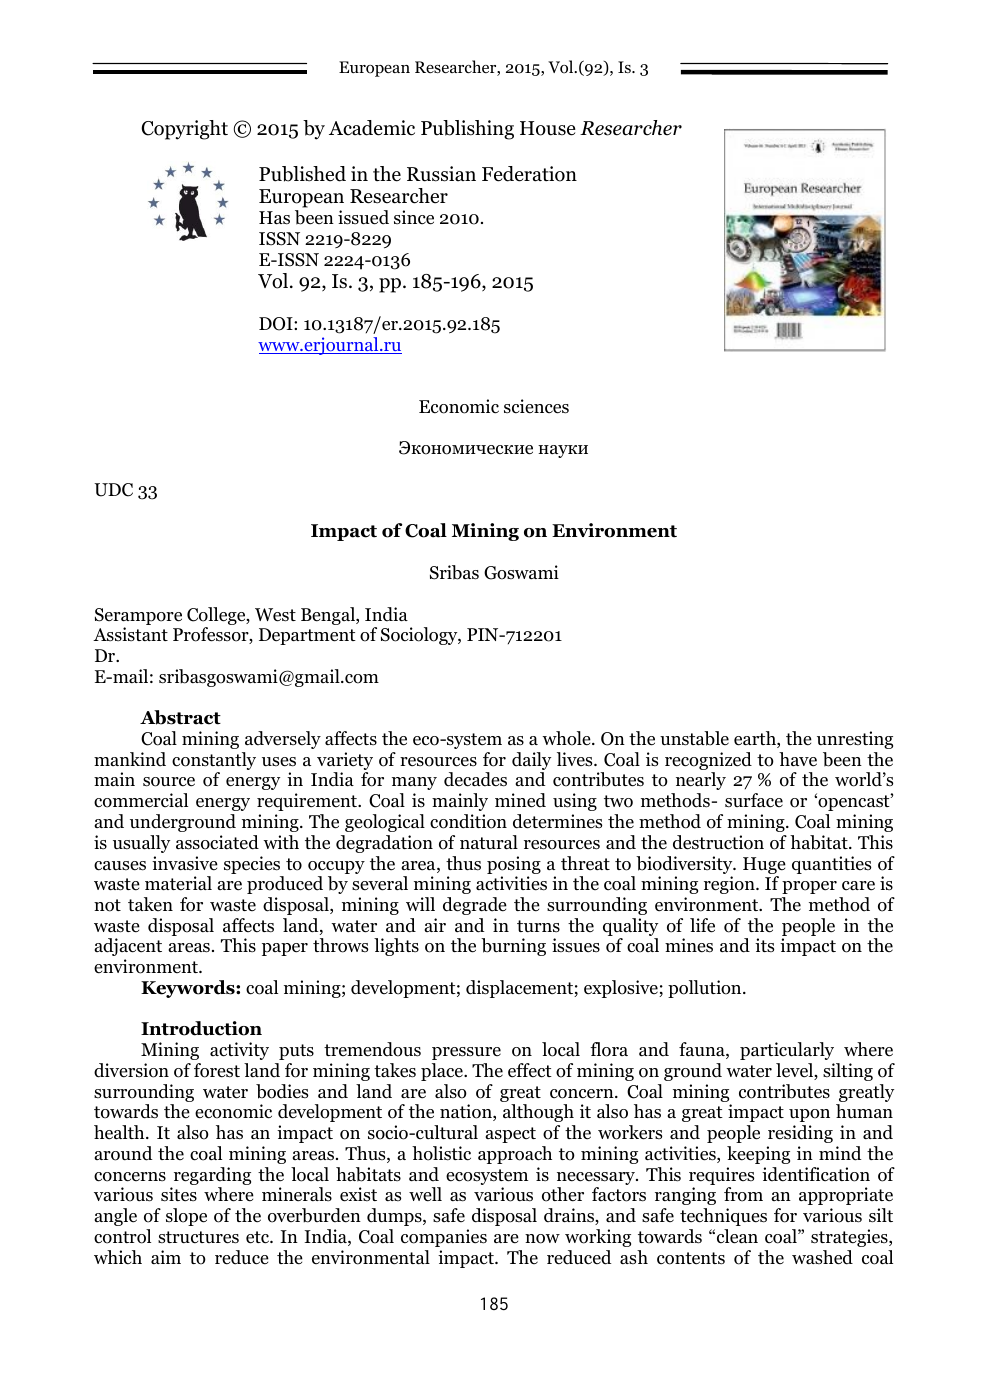 Impact of Coal Mining on Environment – topic of research